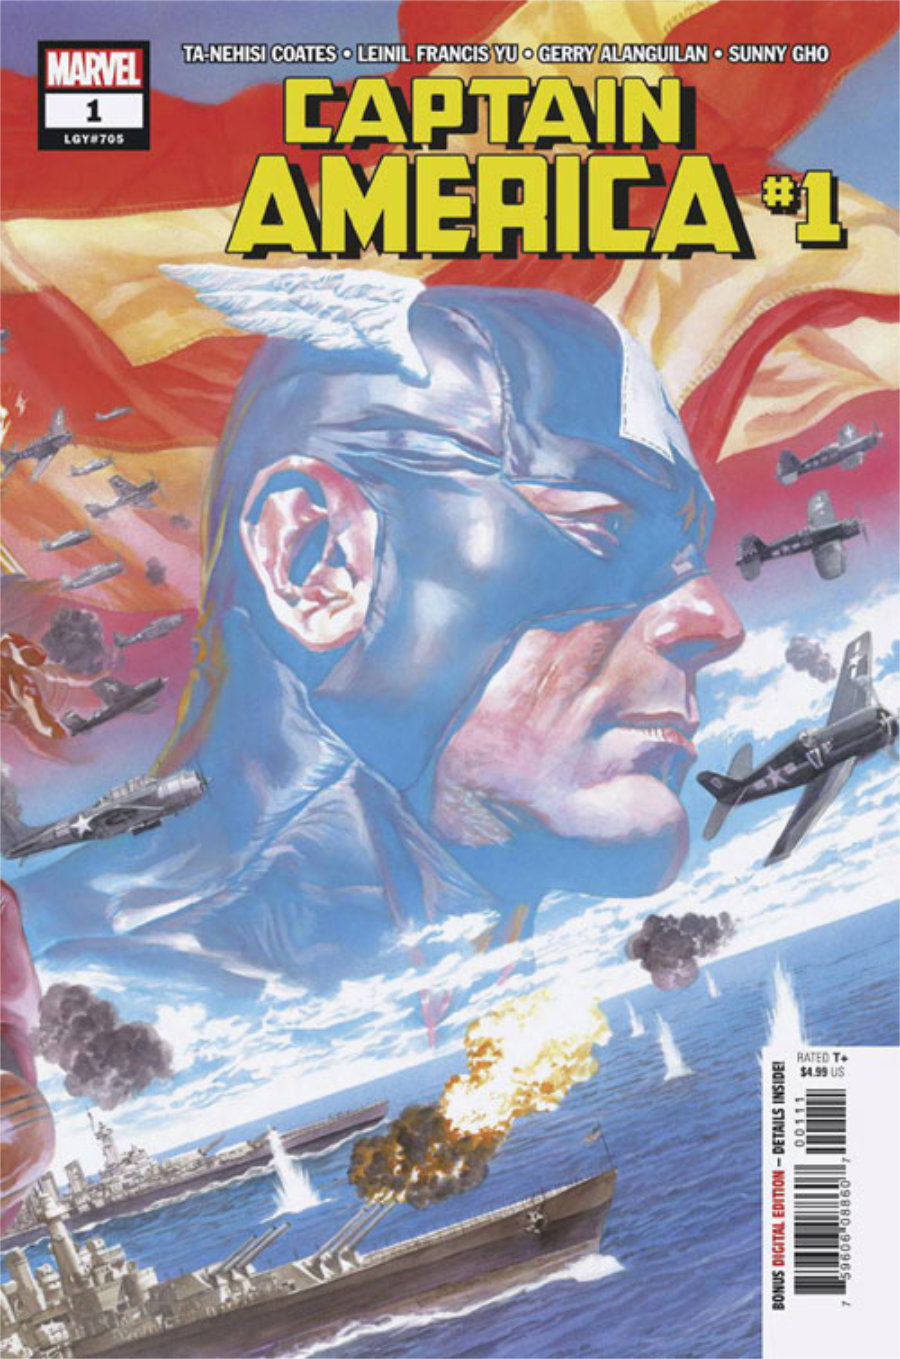 Captain America #1, July 2018